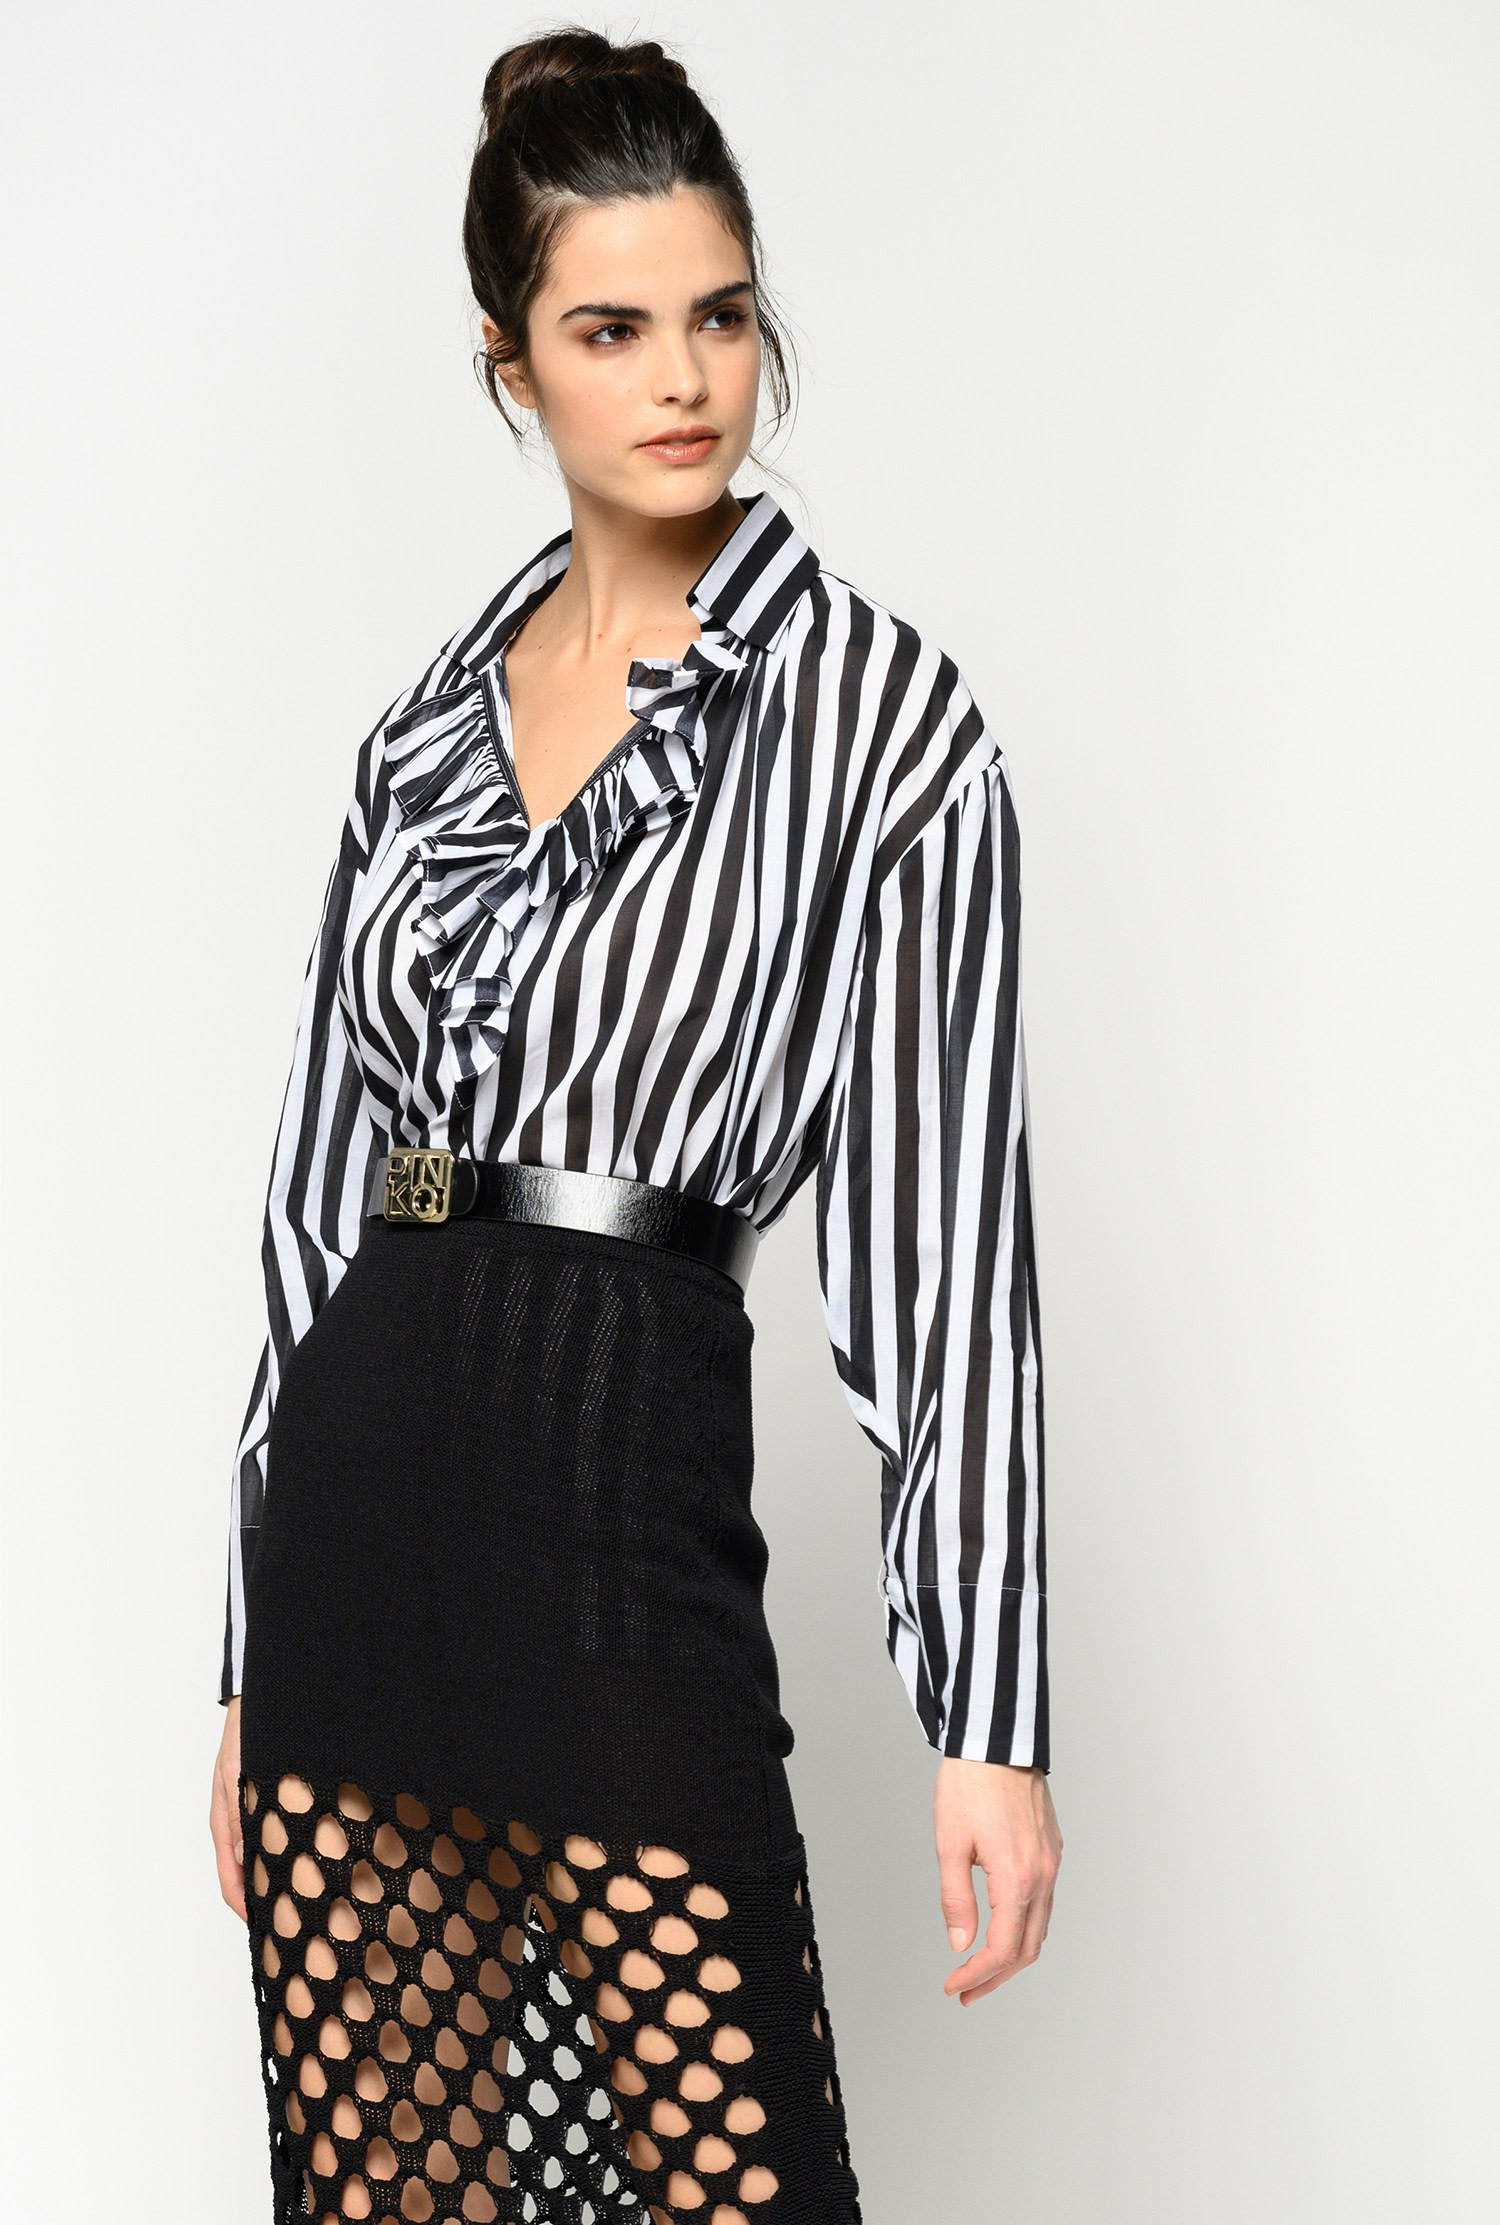 SHOPPING ON LINE PINKO BLUSA A RIGHE CON CINTURA DONUTS NEW COLLECTION WOMEN'S SPRING SUMMER 2020